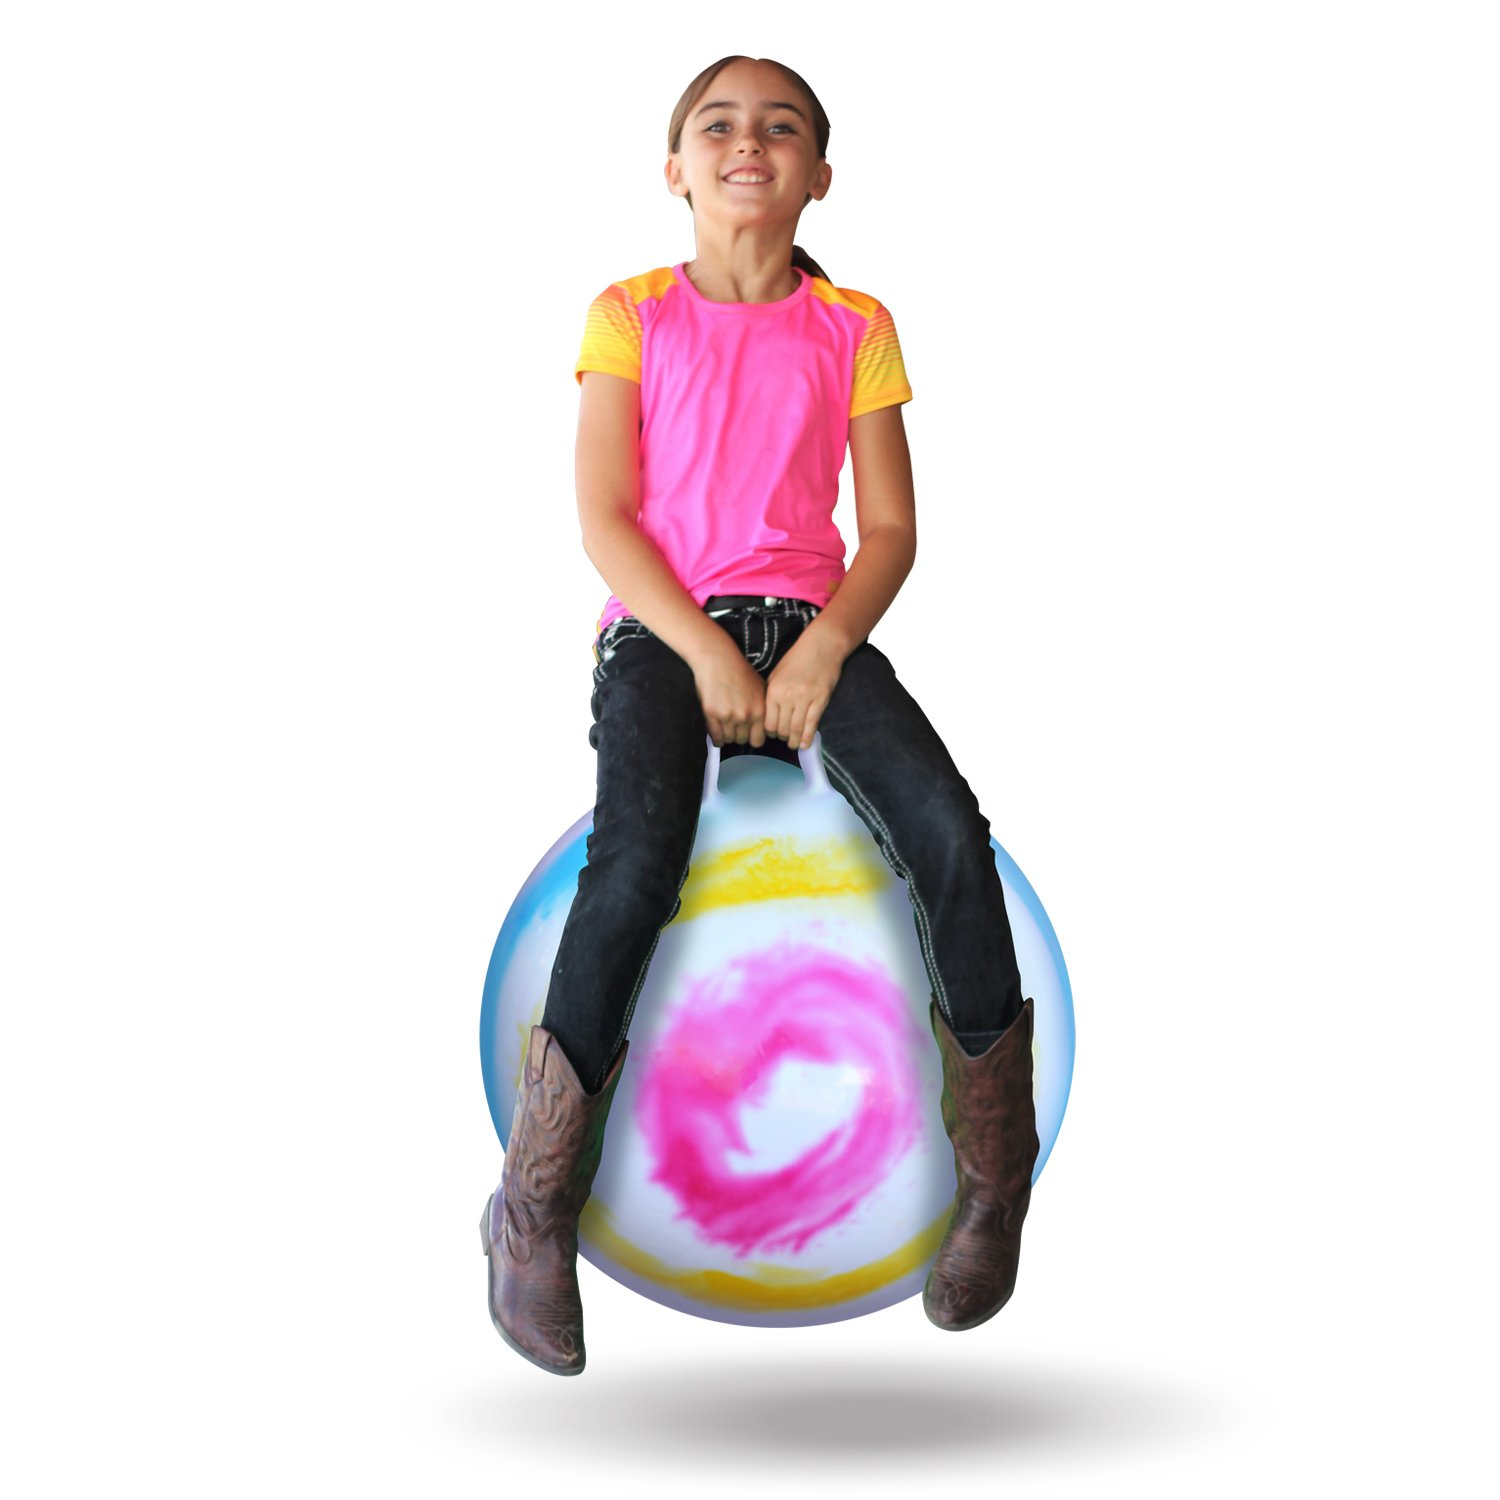 WALIKI Toys Hopper Ball for Kids Ages 3-6 Hippity Hop Ball, Hopping Ball, Bouncy Ball with Handles, Sit /& Bounce, Kangaroo Bouncer, Jumping Ball, 18 Inches, Rainbow Tie Dye, Pump Included